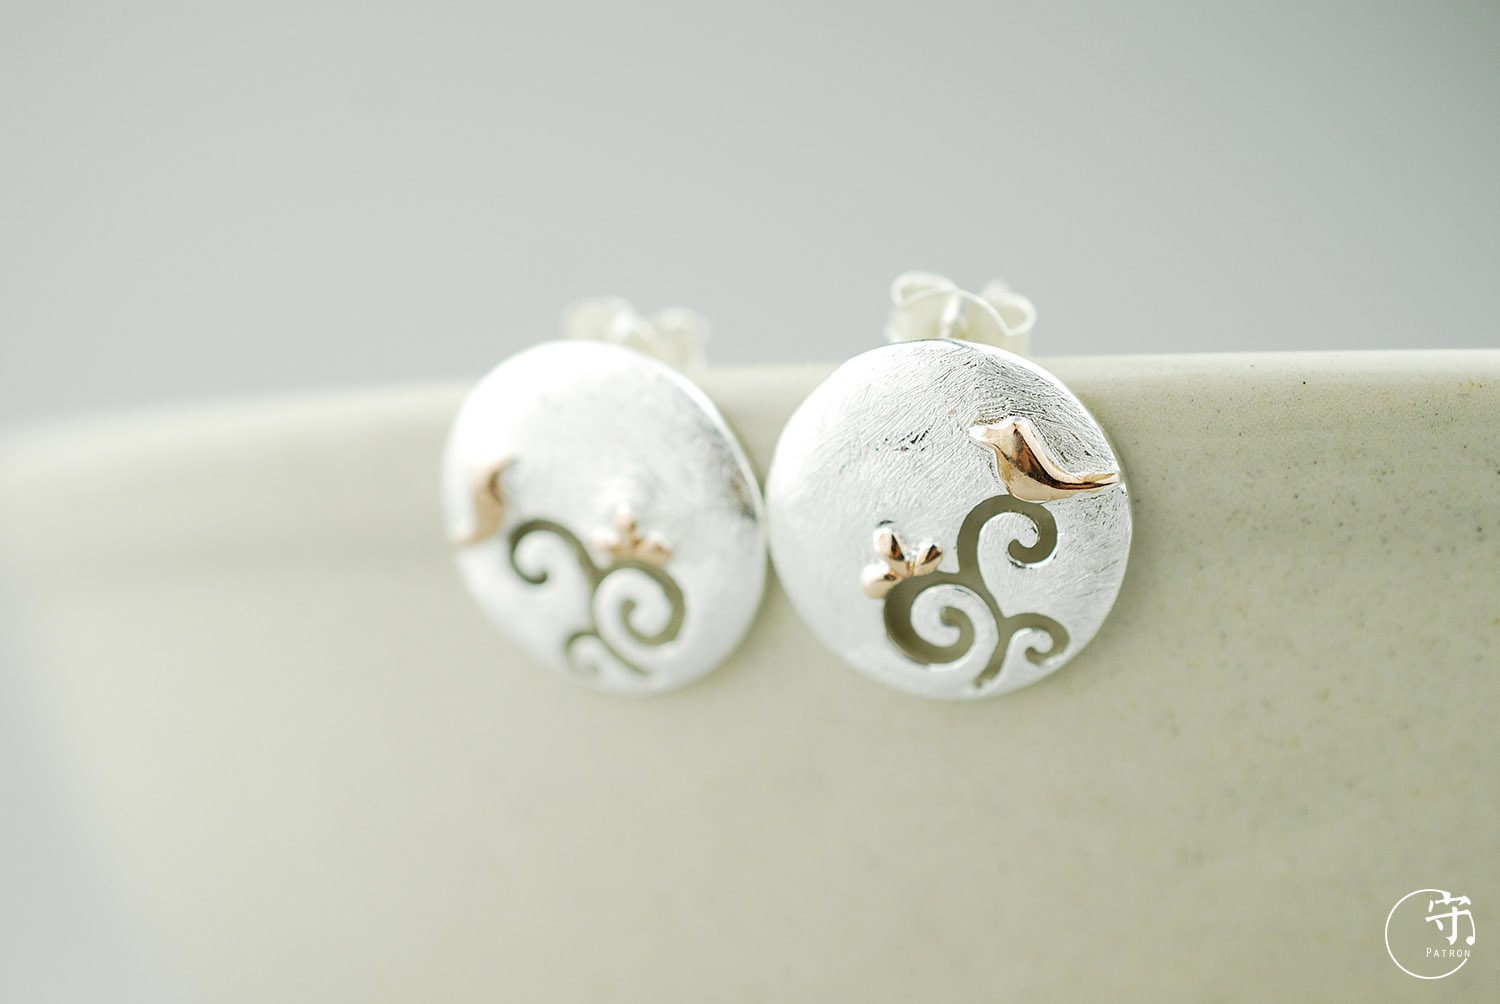 Exclusive Handmade Round Hollow Out Golden Birds on Tree Women 925 Sliver Earrings